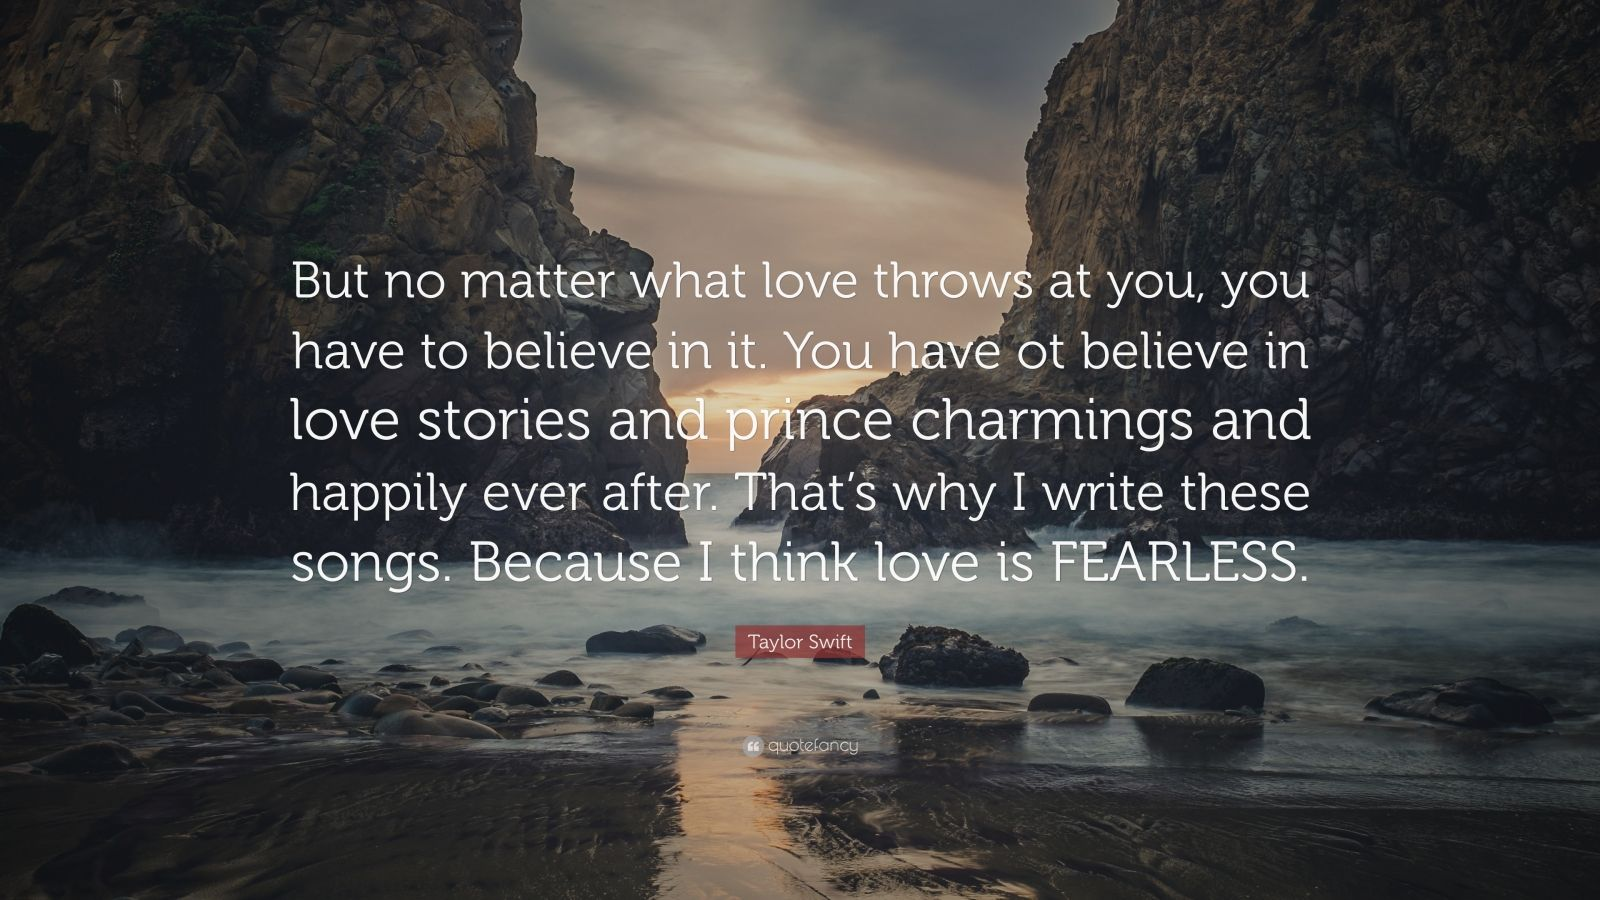 """Taylor Swift Quote: """"But no matter what love throws at you, you have to believe in it. You have ot believe in love stories and prince charmings and happily ever after. That's why I write these songs. Because I think love is FEARLESS."""""""